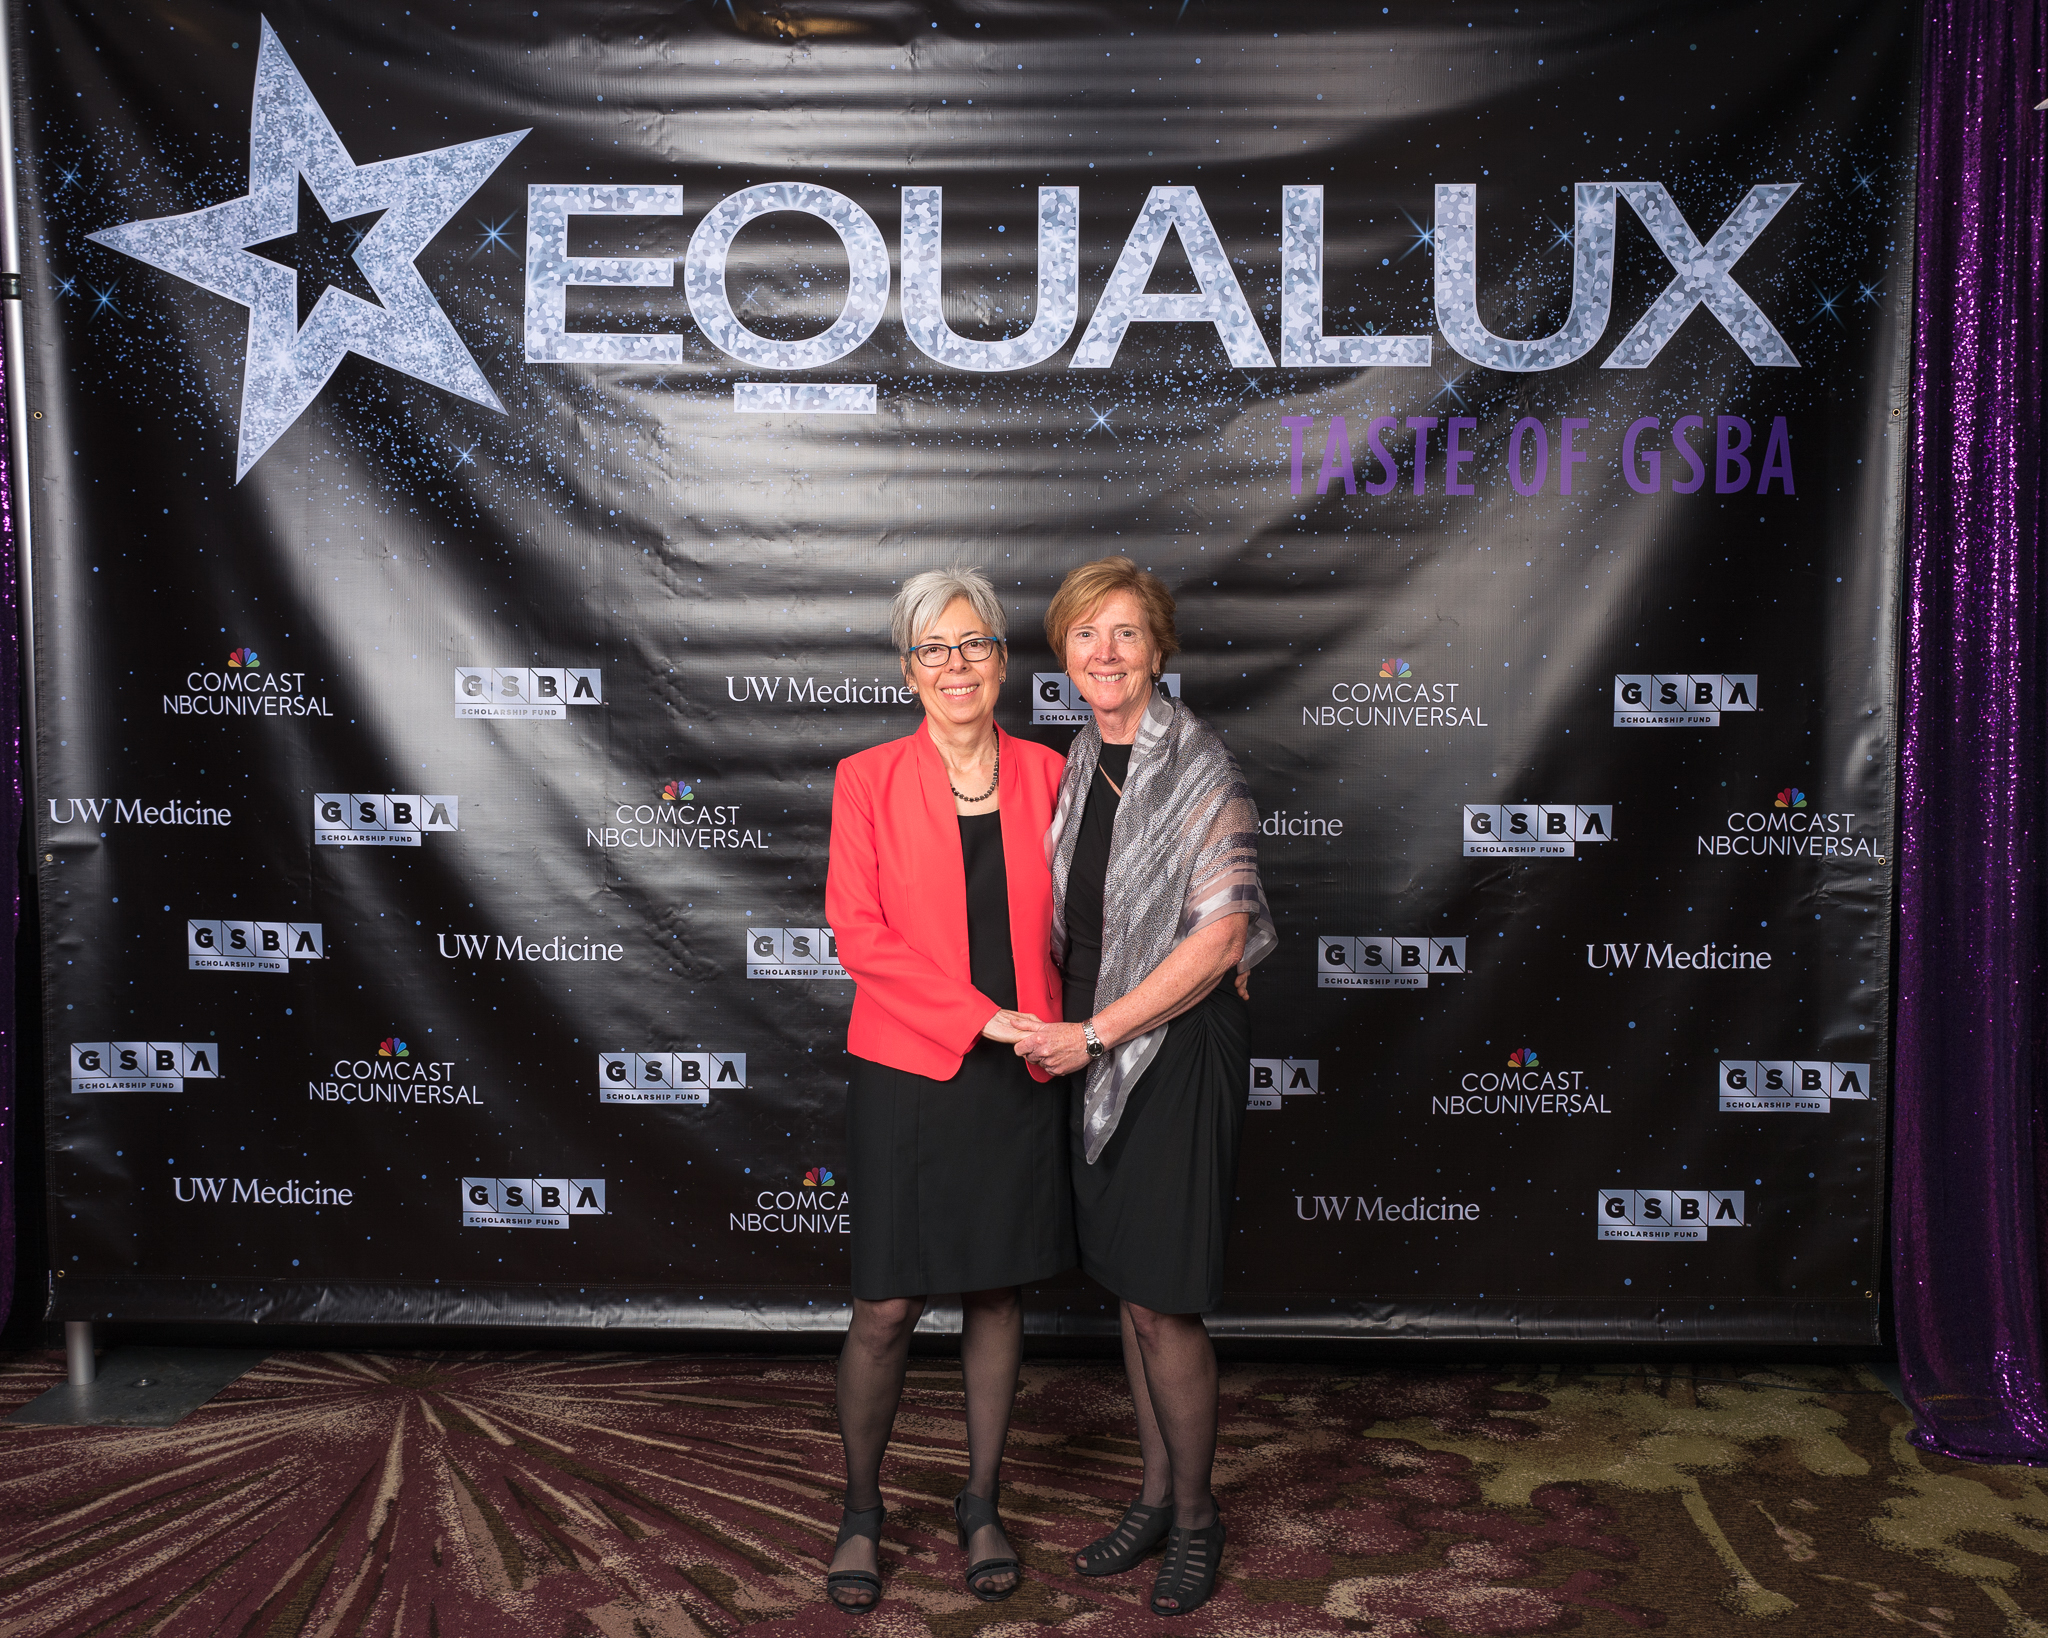 111718_GSBA EQUALUX at The Westin Seattle (Credit- Nate Gowdy)-25.jpg